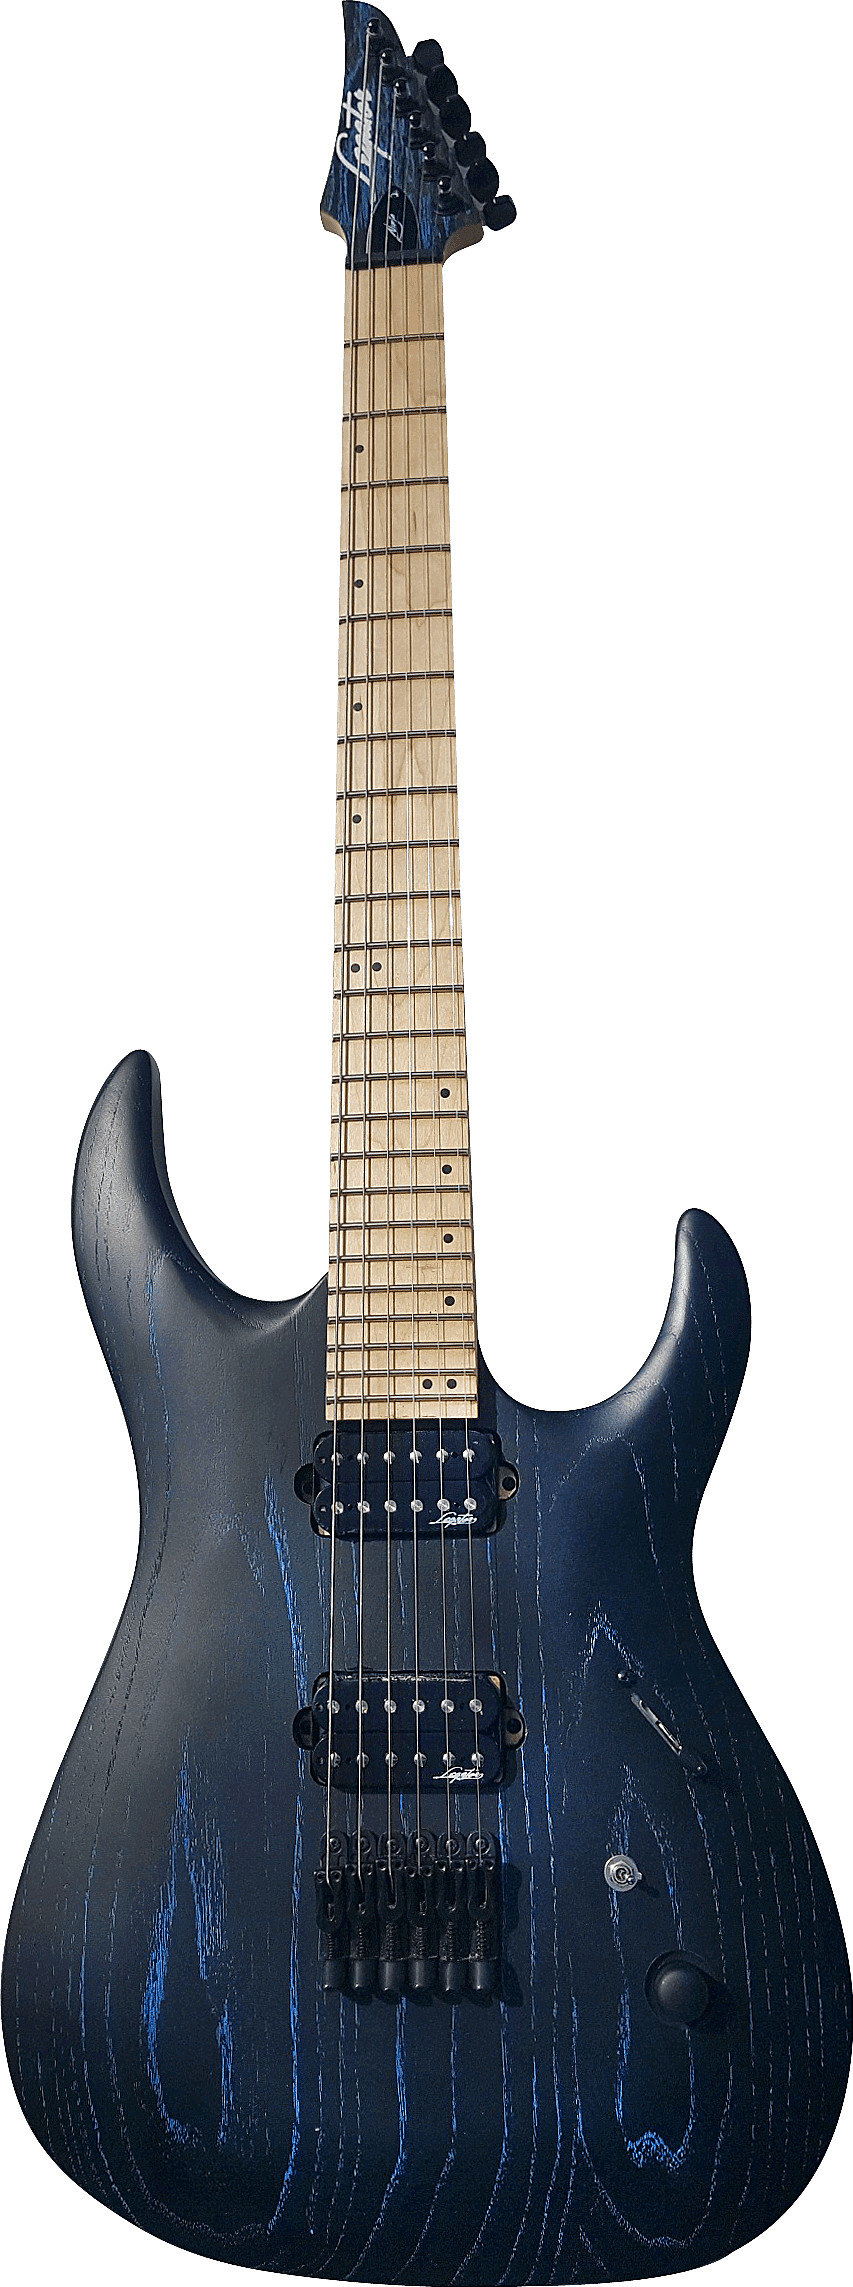 2018 Ninja NRA 6-String by Legator Guitars